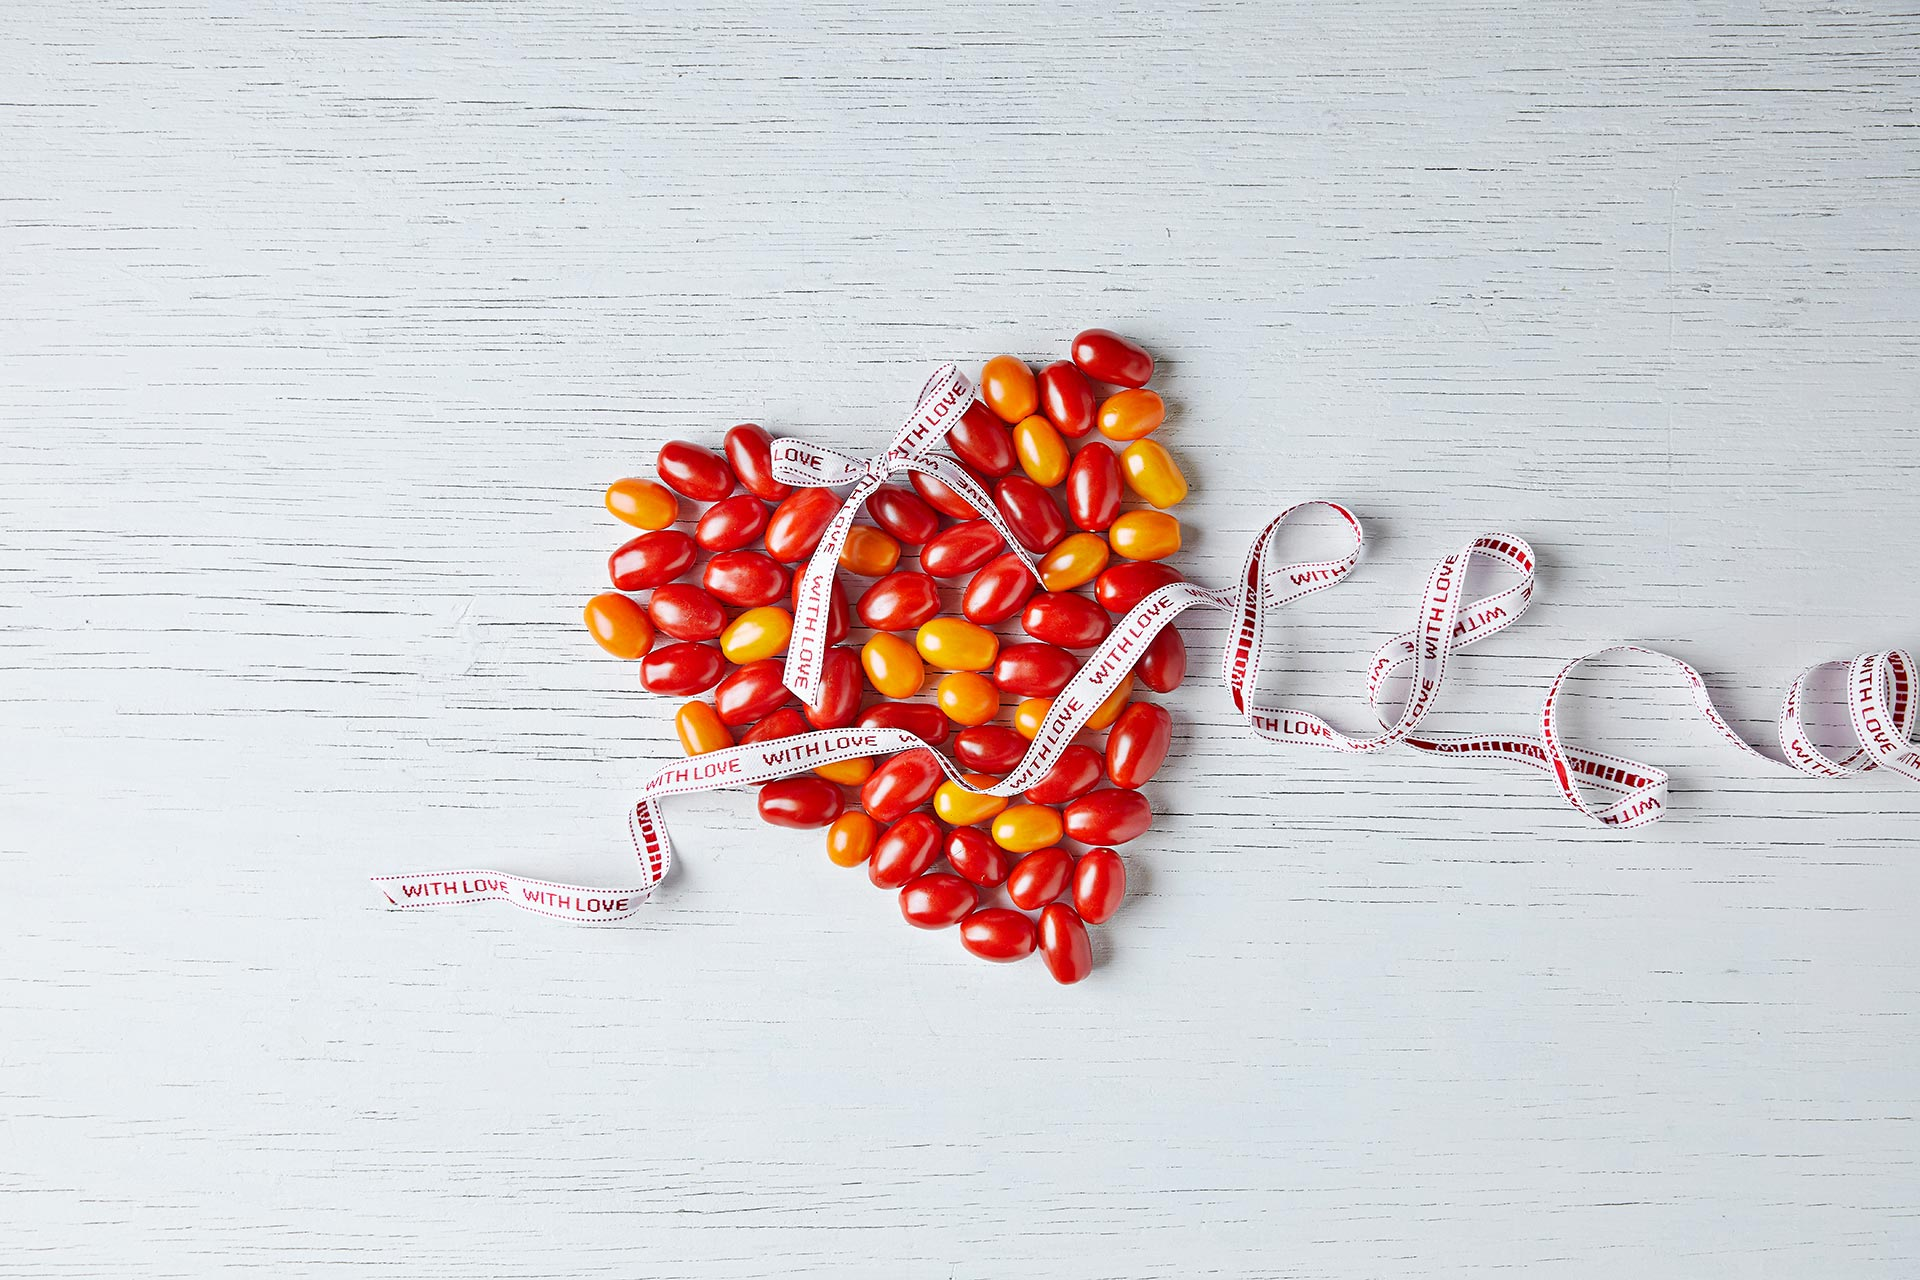 Heart made out of cherry tomatoes